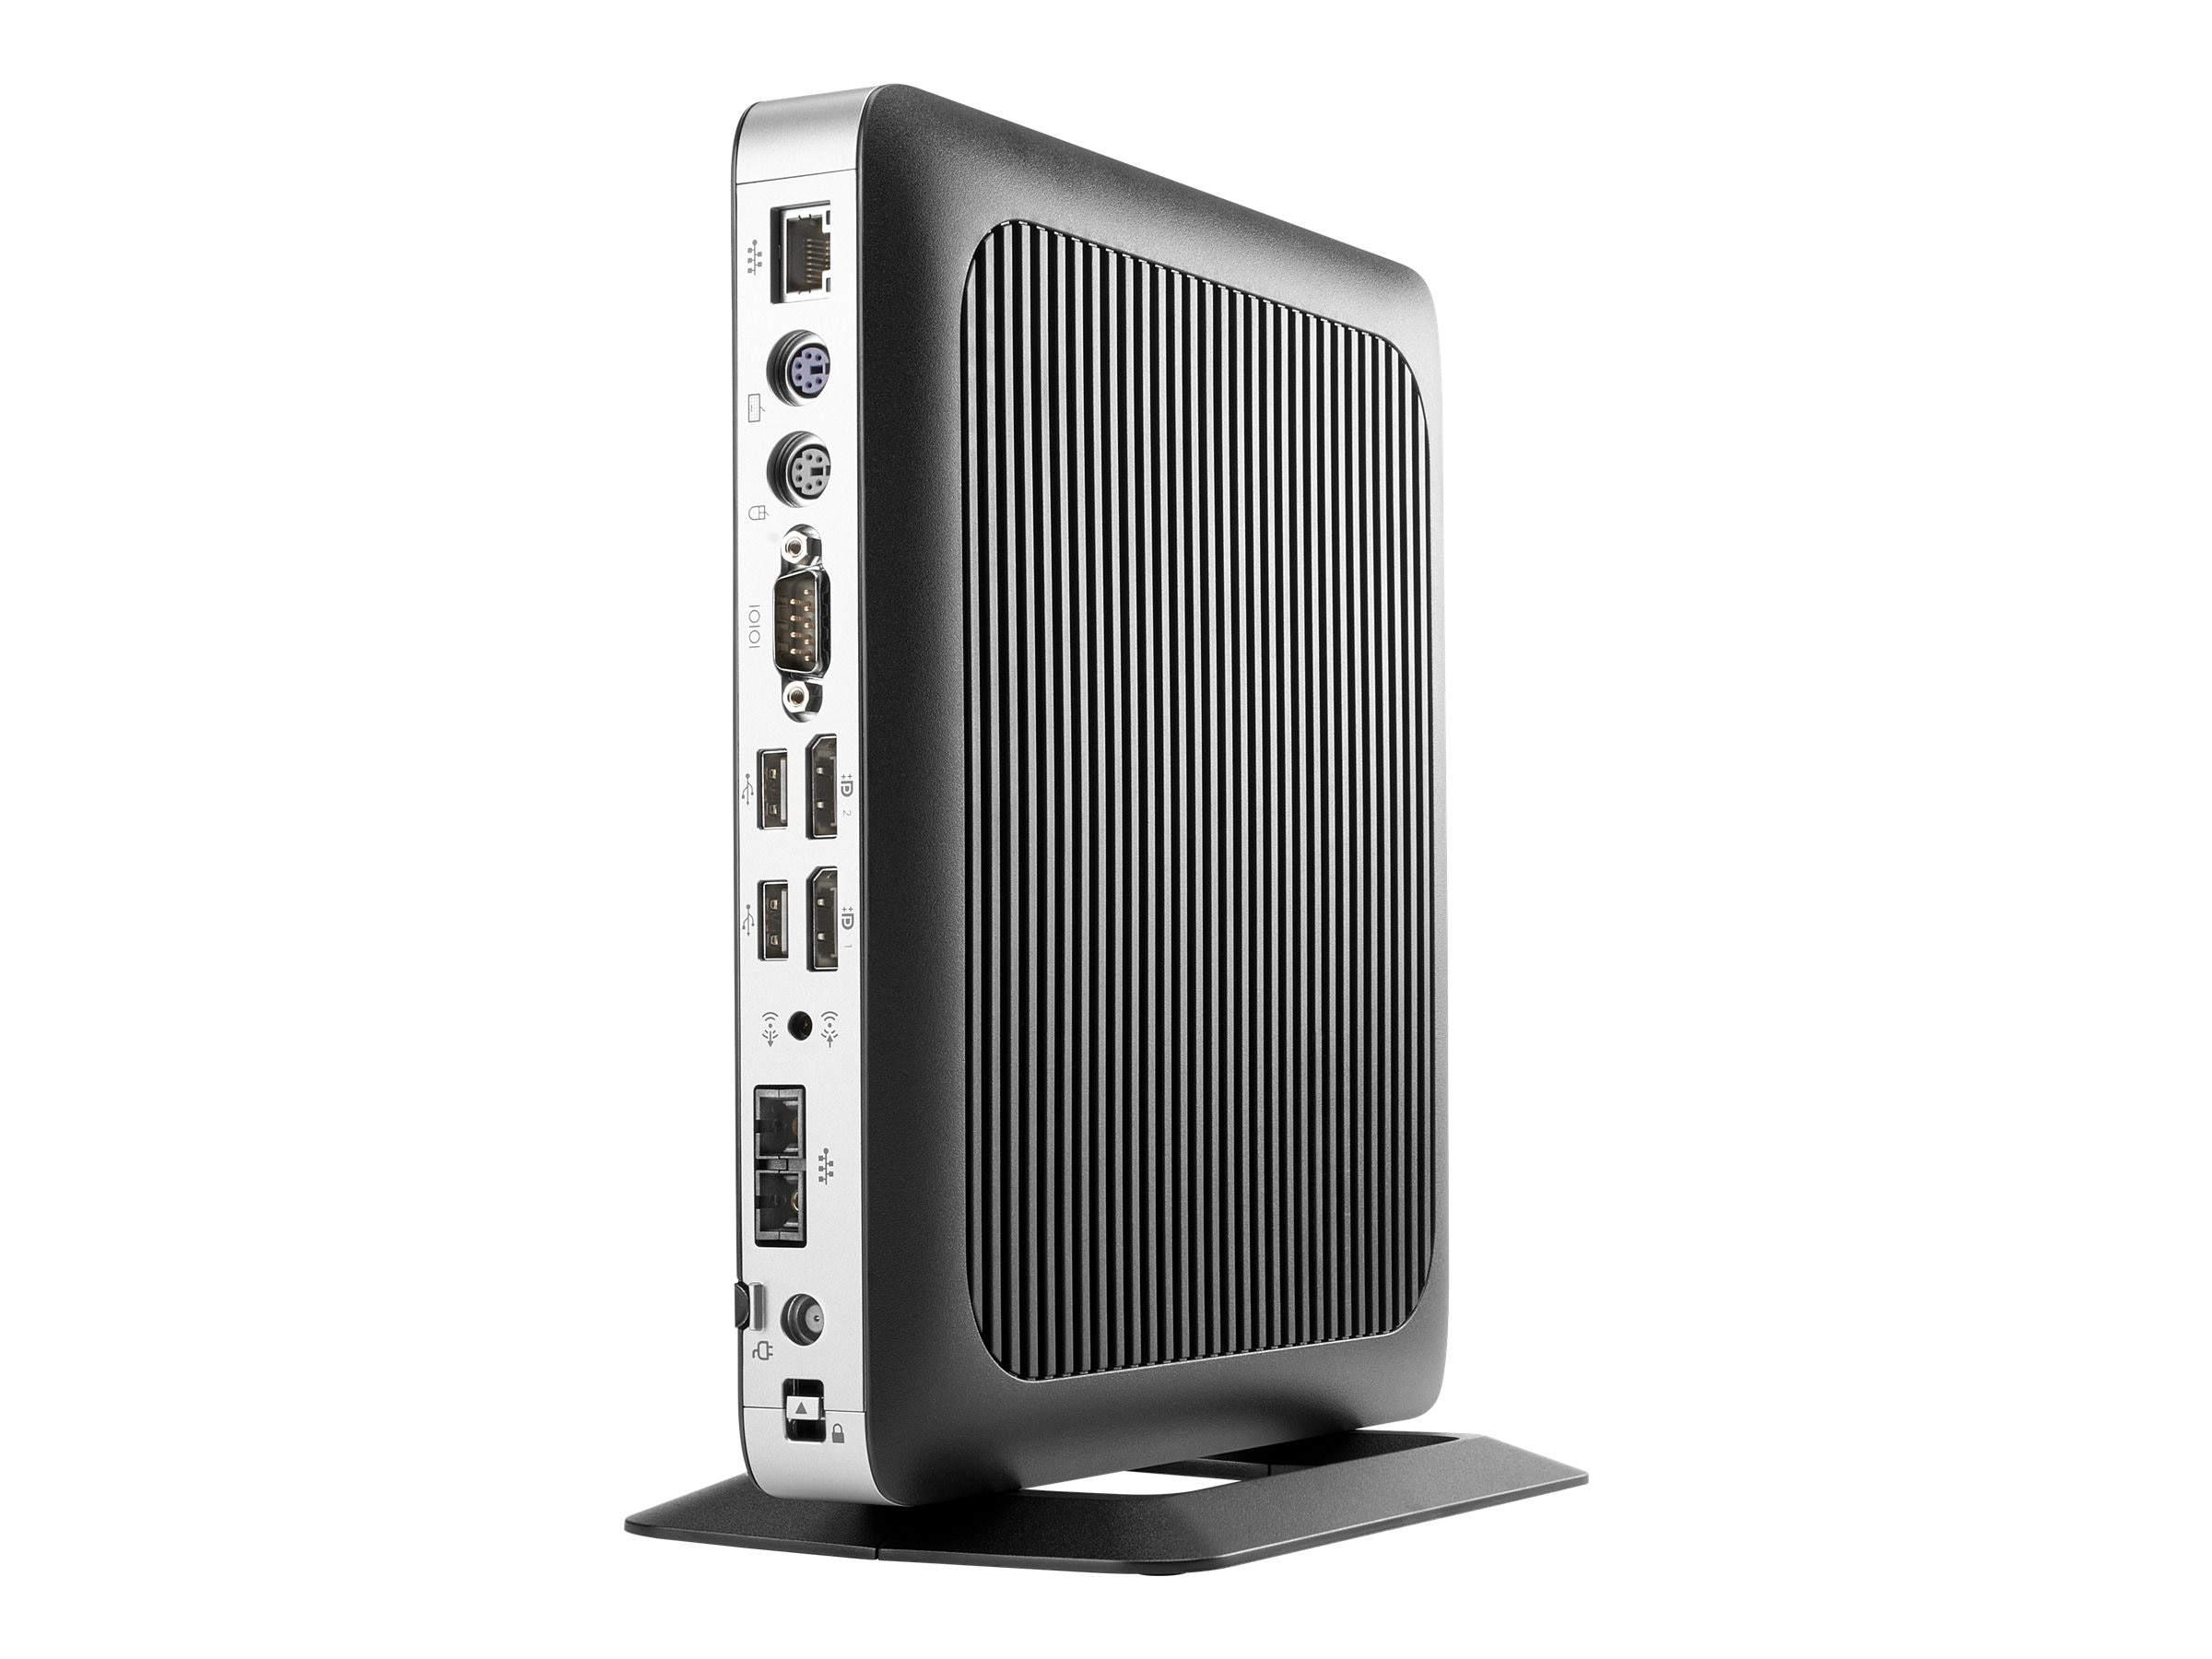 HP t630 Thin Client AMD GX-420GI 2.0GHz 4GB 16GB Flash R6E GbE VGA WES7E, W5Z02UT#ABA